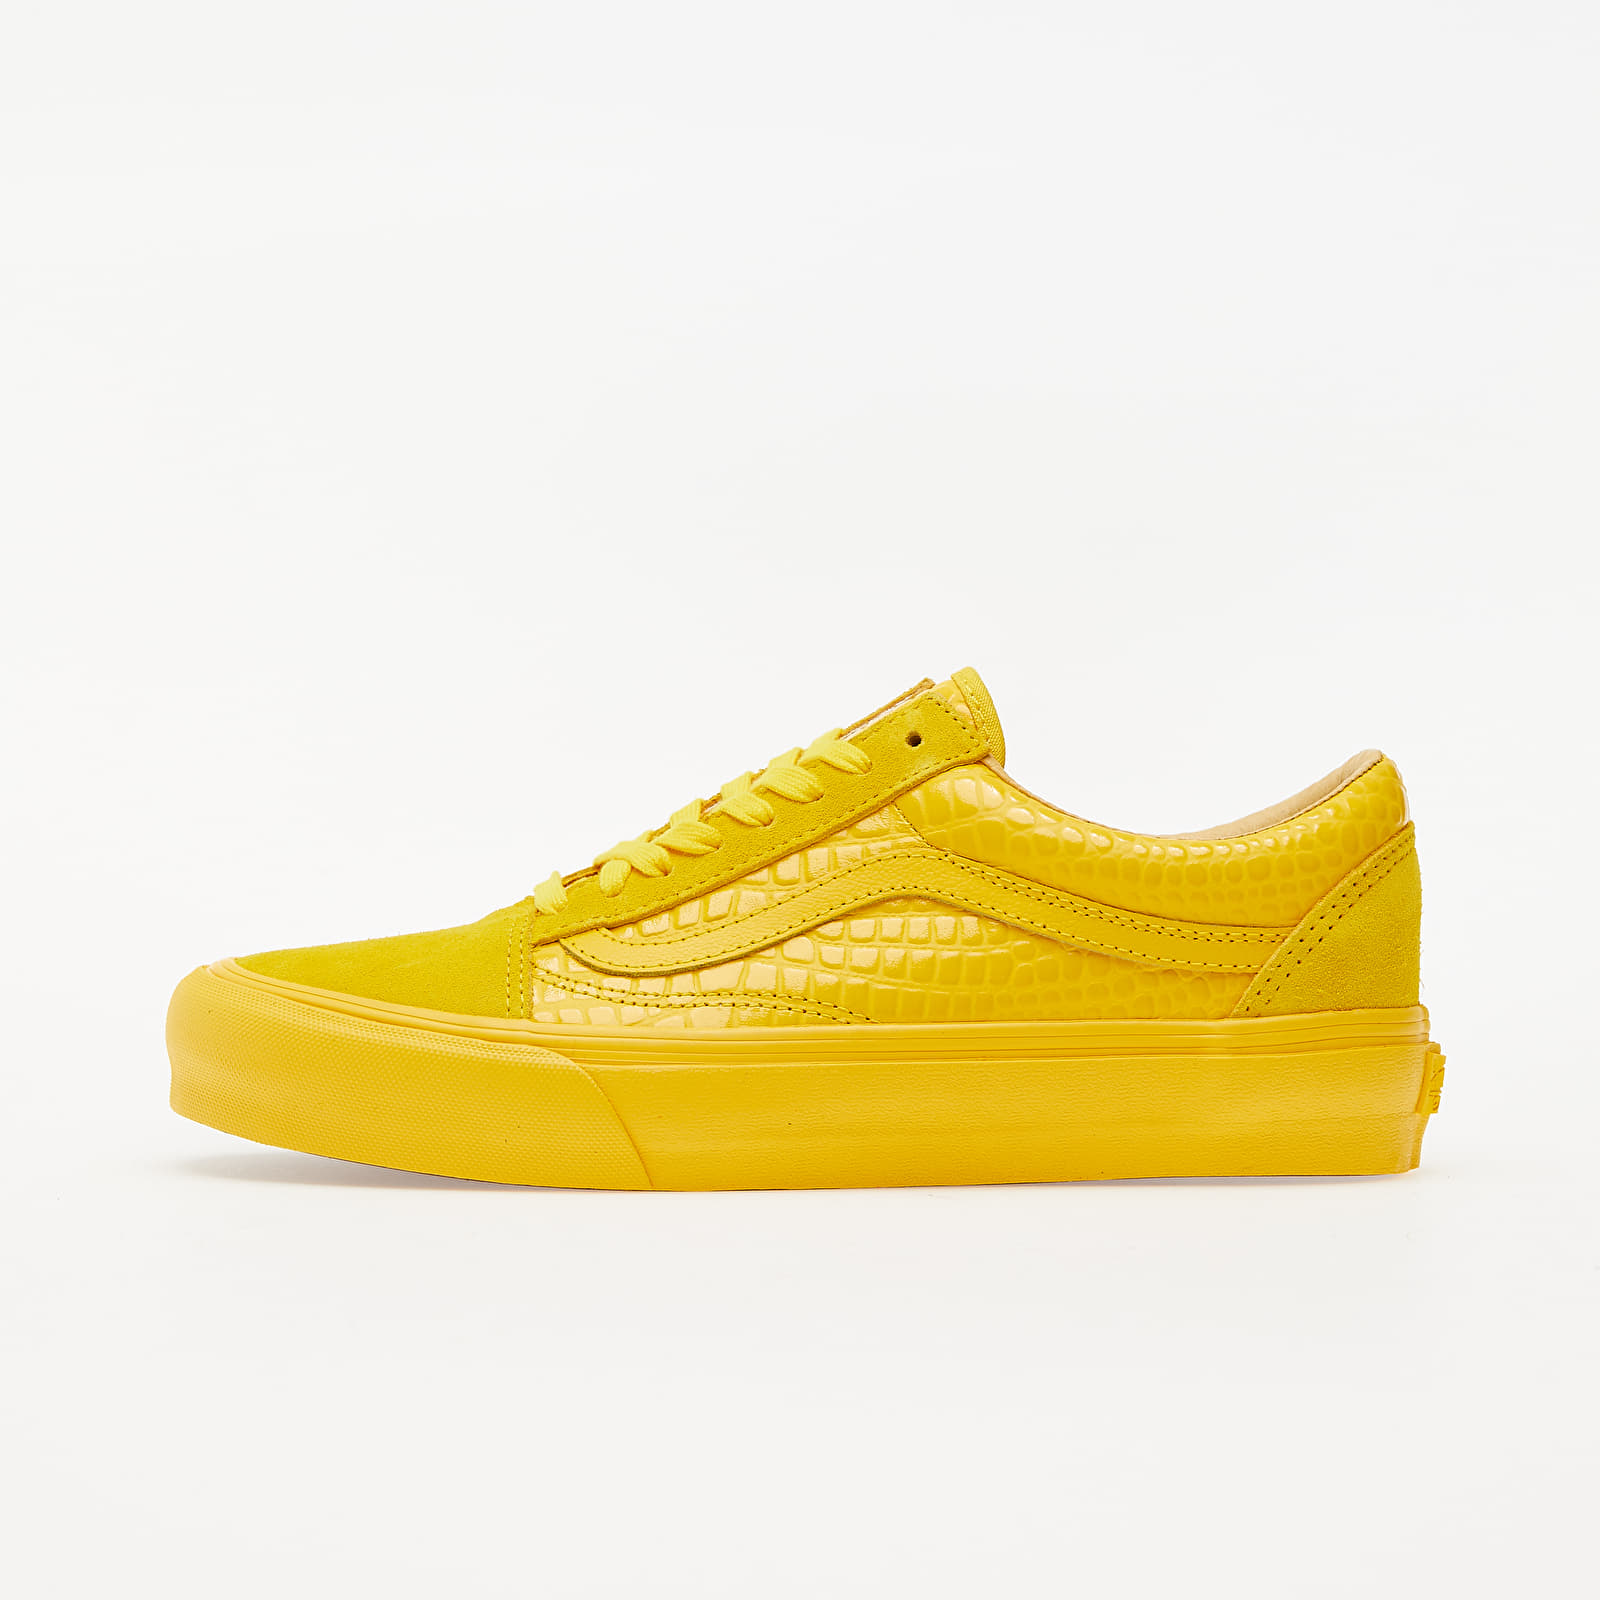 Vans Old Skool VLT LX (Croc Skin) Lemon Chrome VN0A4BVF2TR1